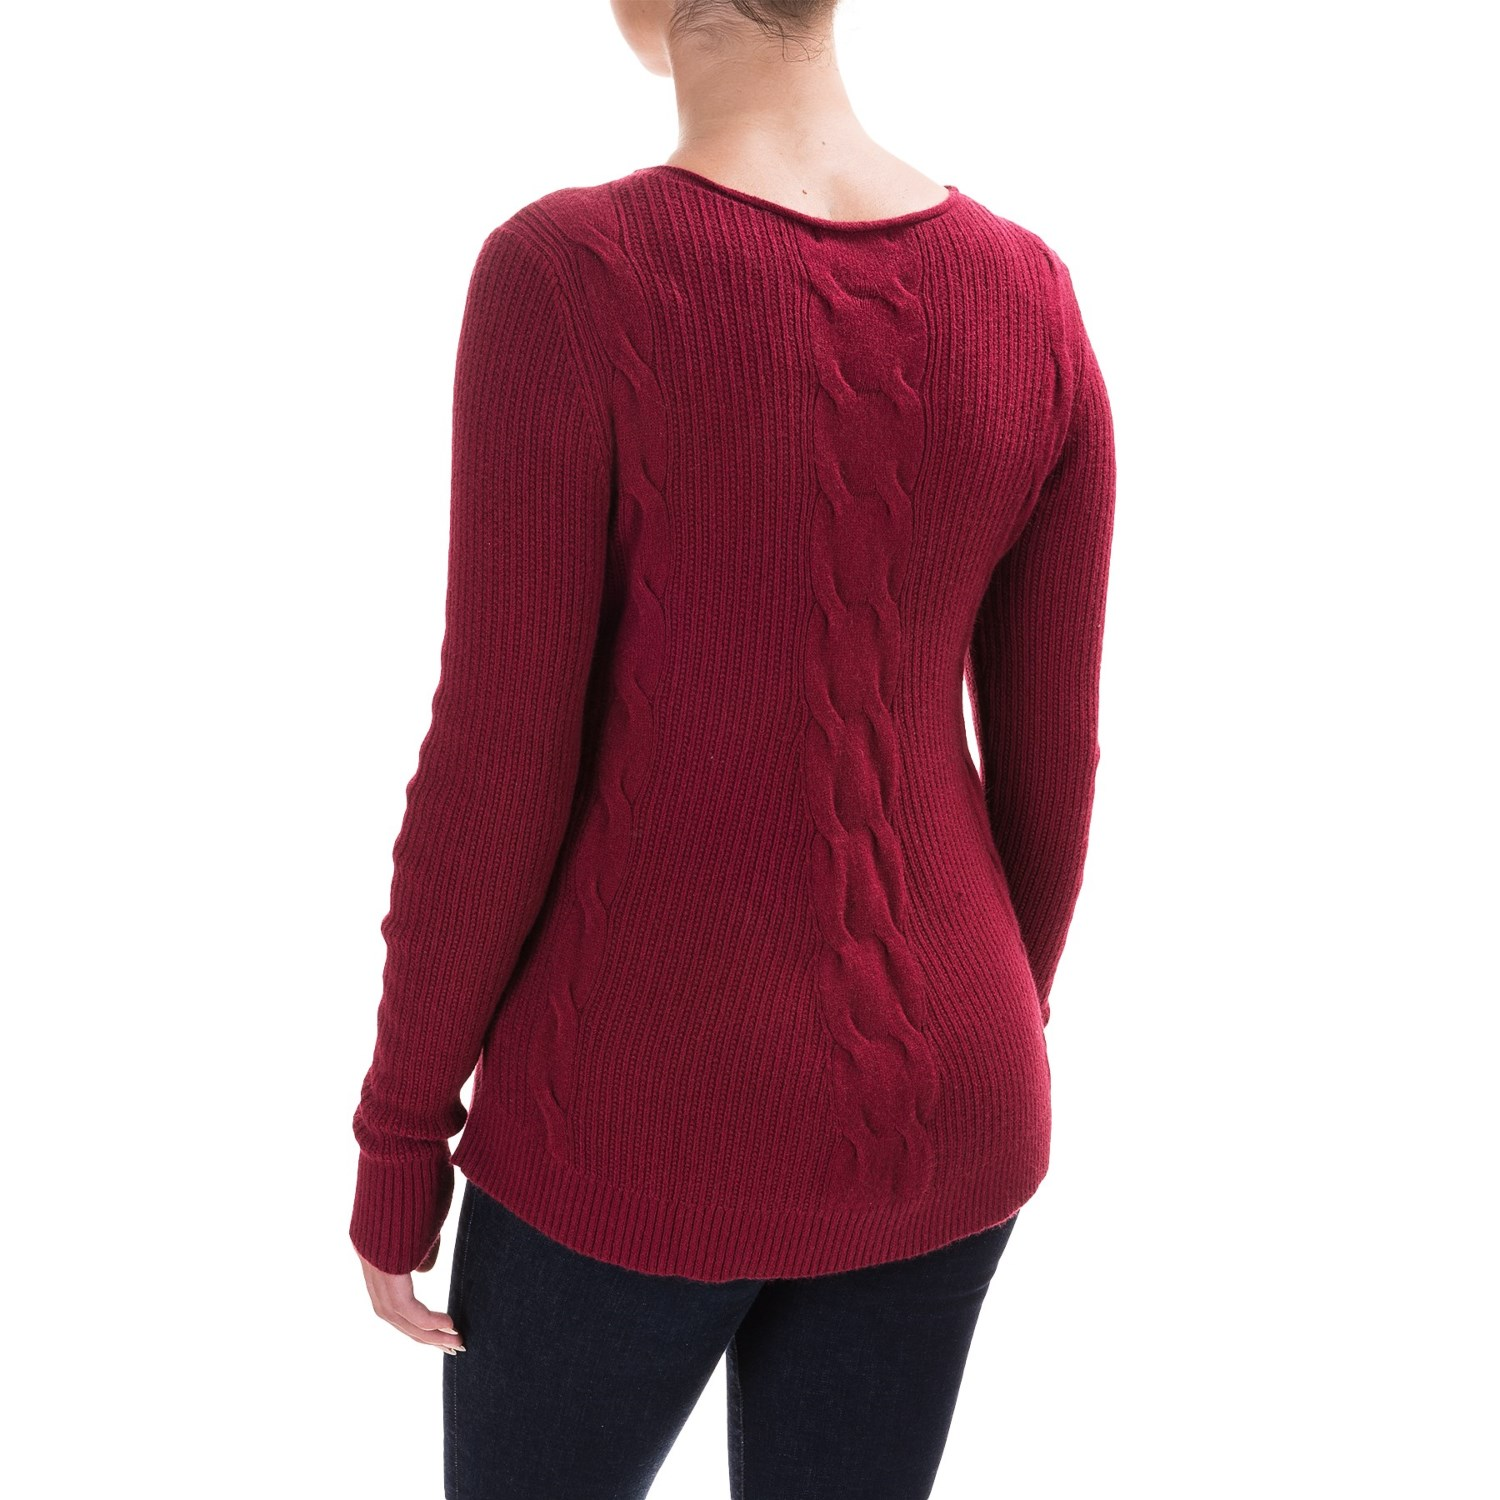 Parkhurst Barbara Cable-Knit Sweater (For Women) - Save 49%